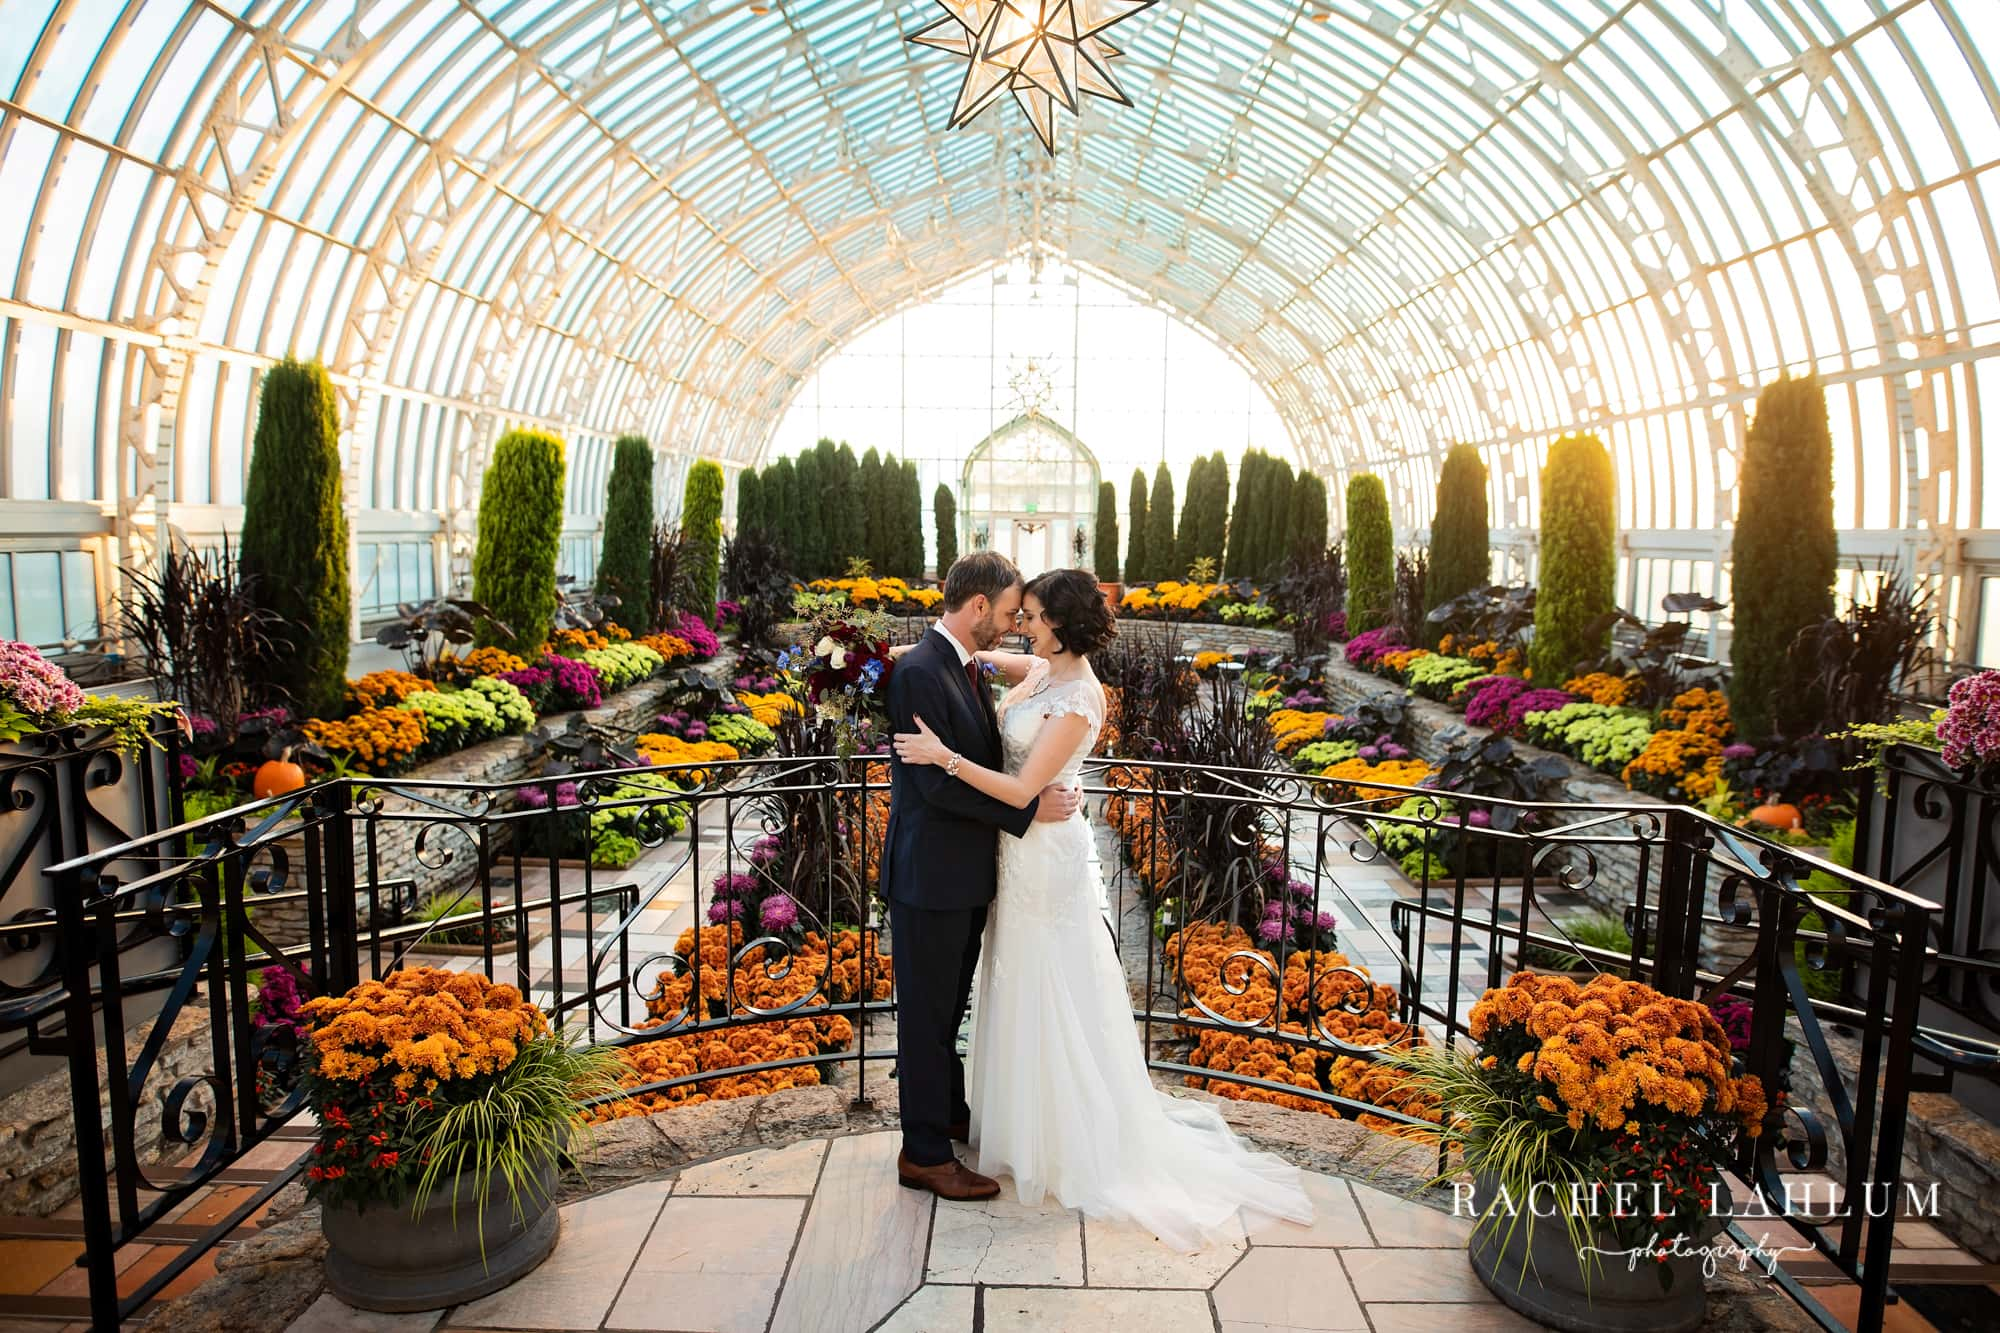 Bride and groom embracing on the upper landing in the Sunken Garden.